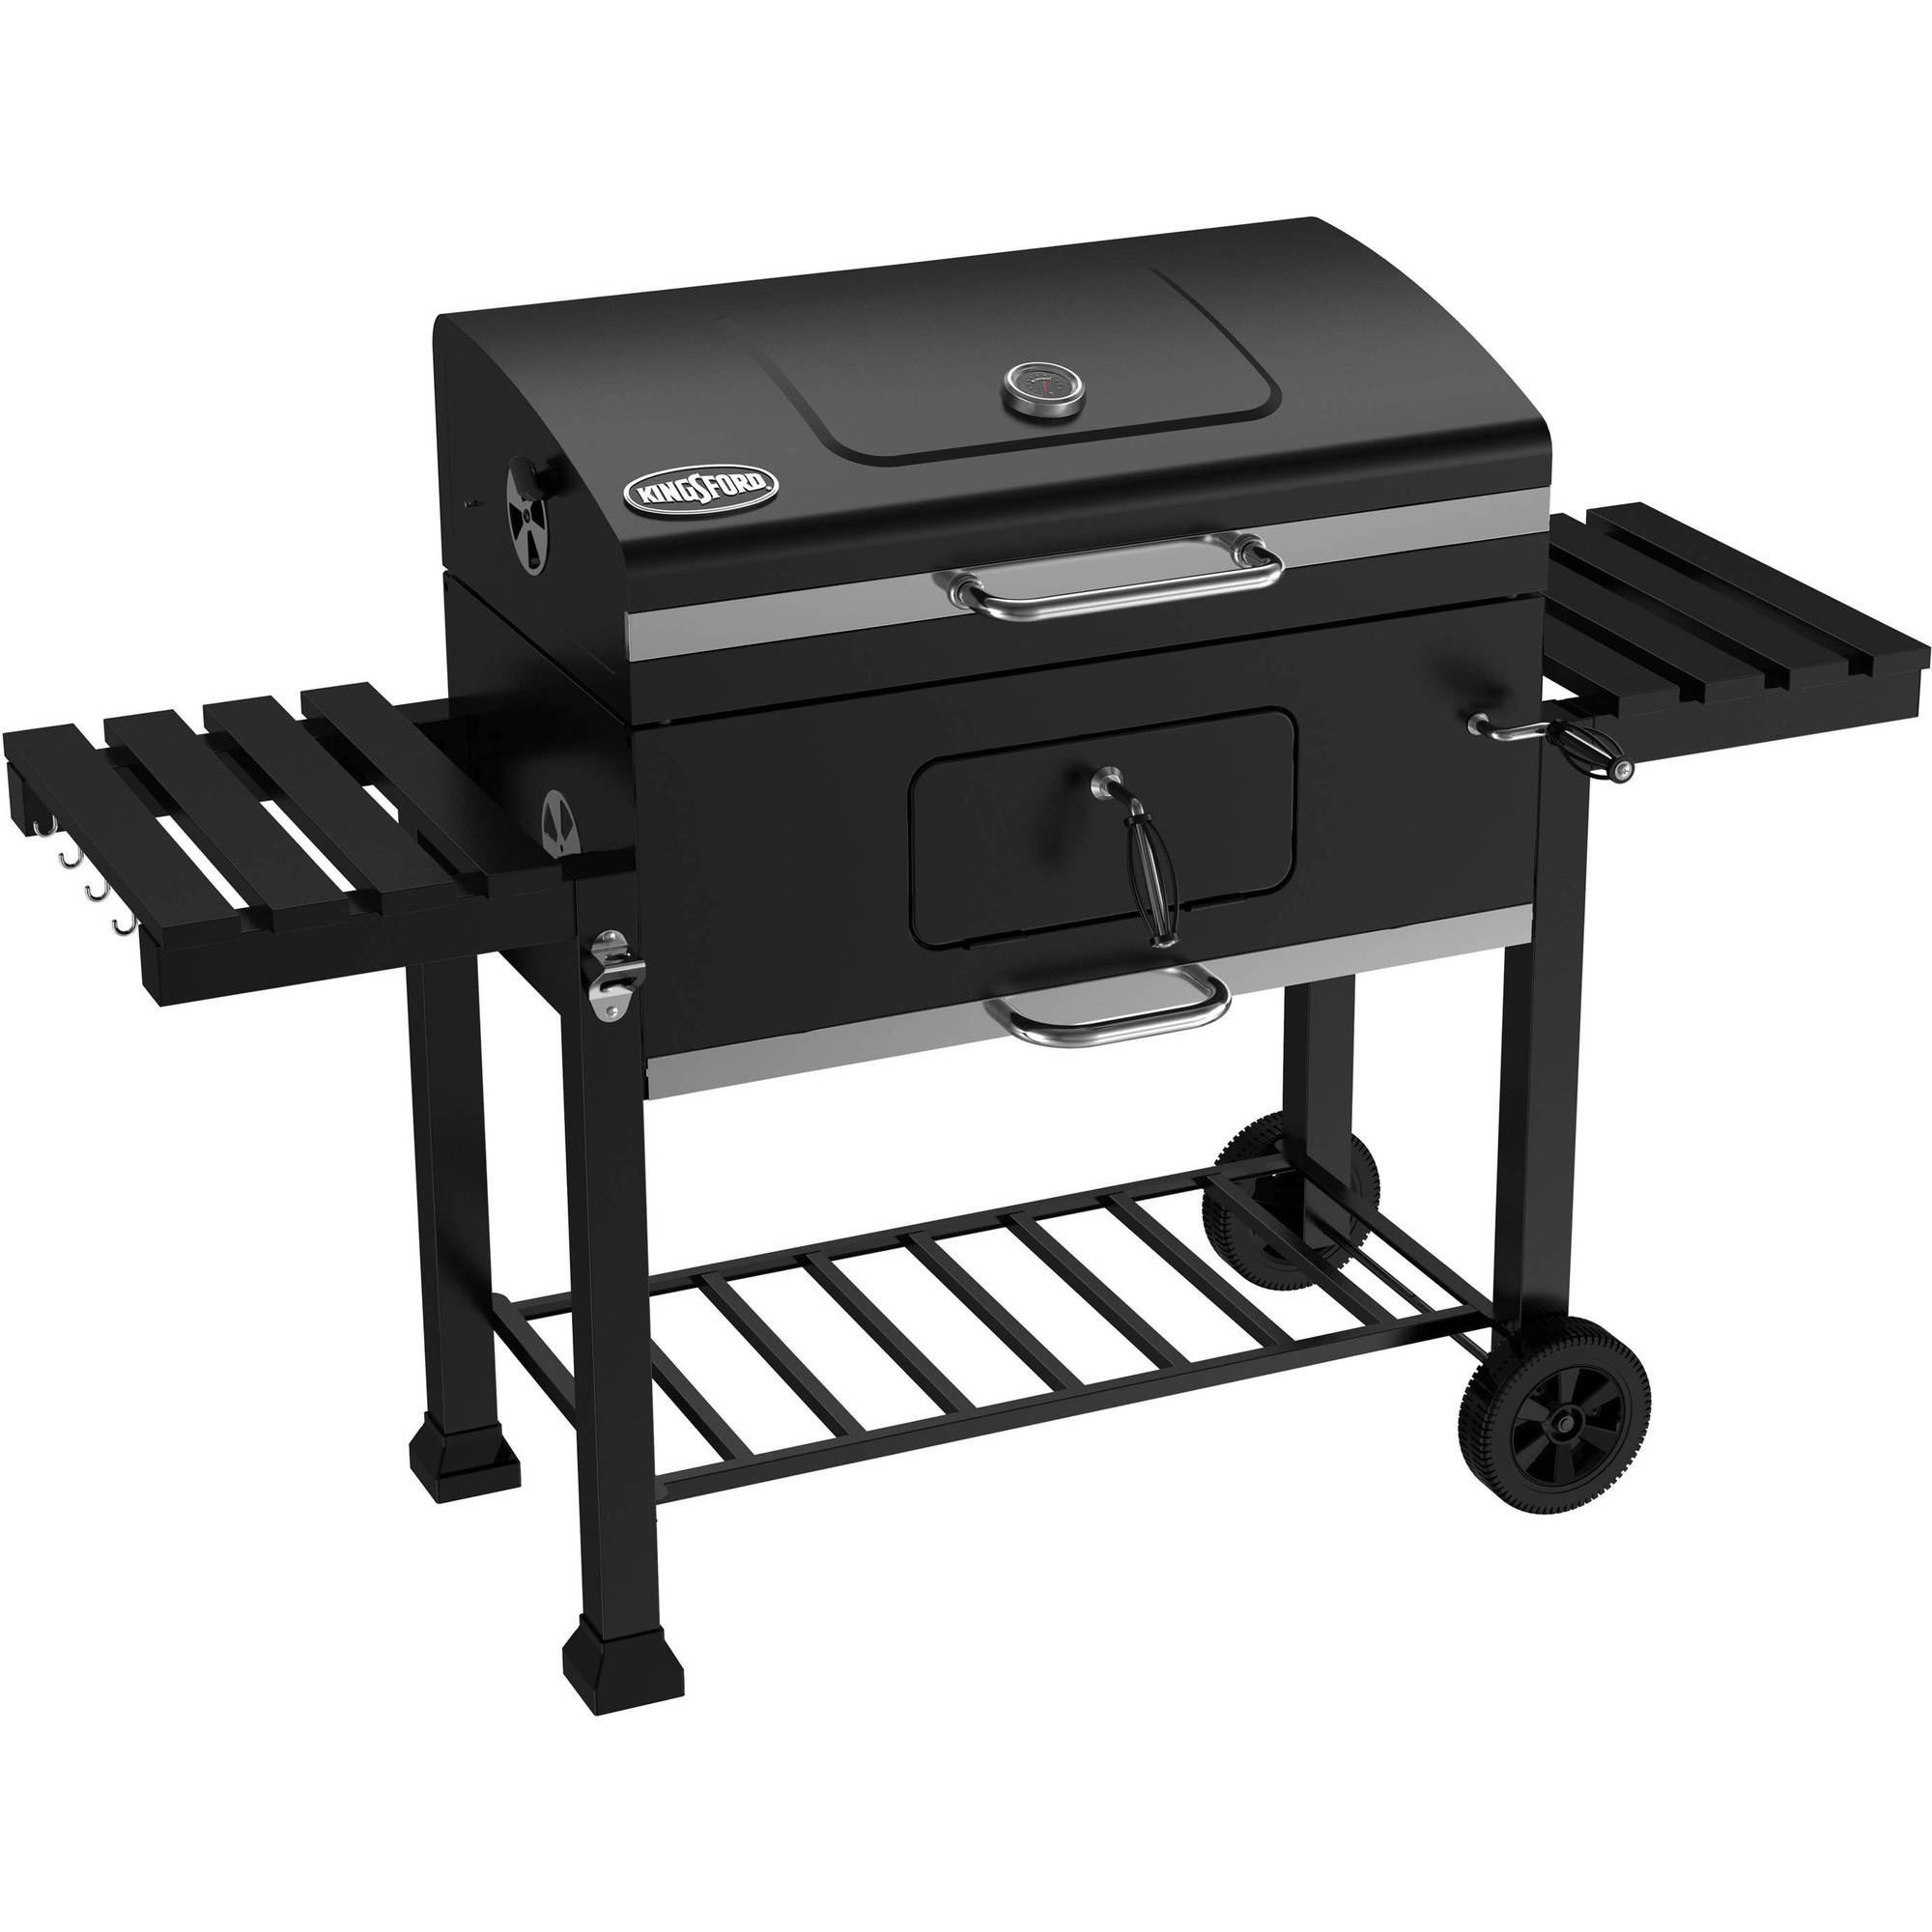 """Kingsford 32"""" Charcoal Grill Smoker Picnic Outdoor Black"""